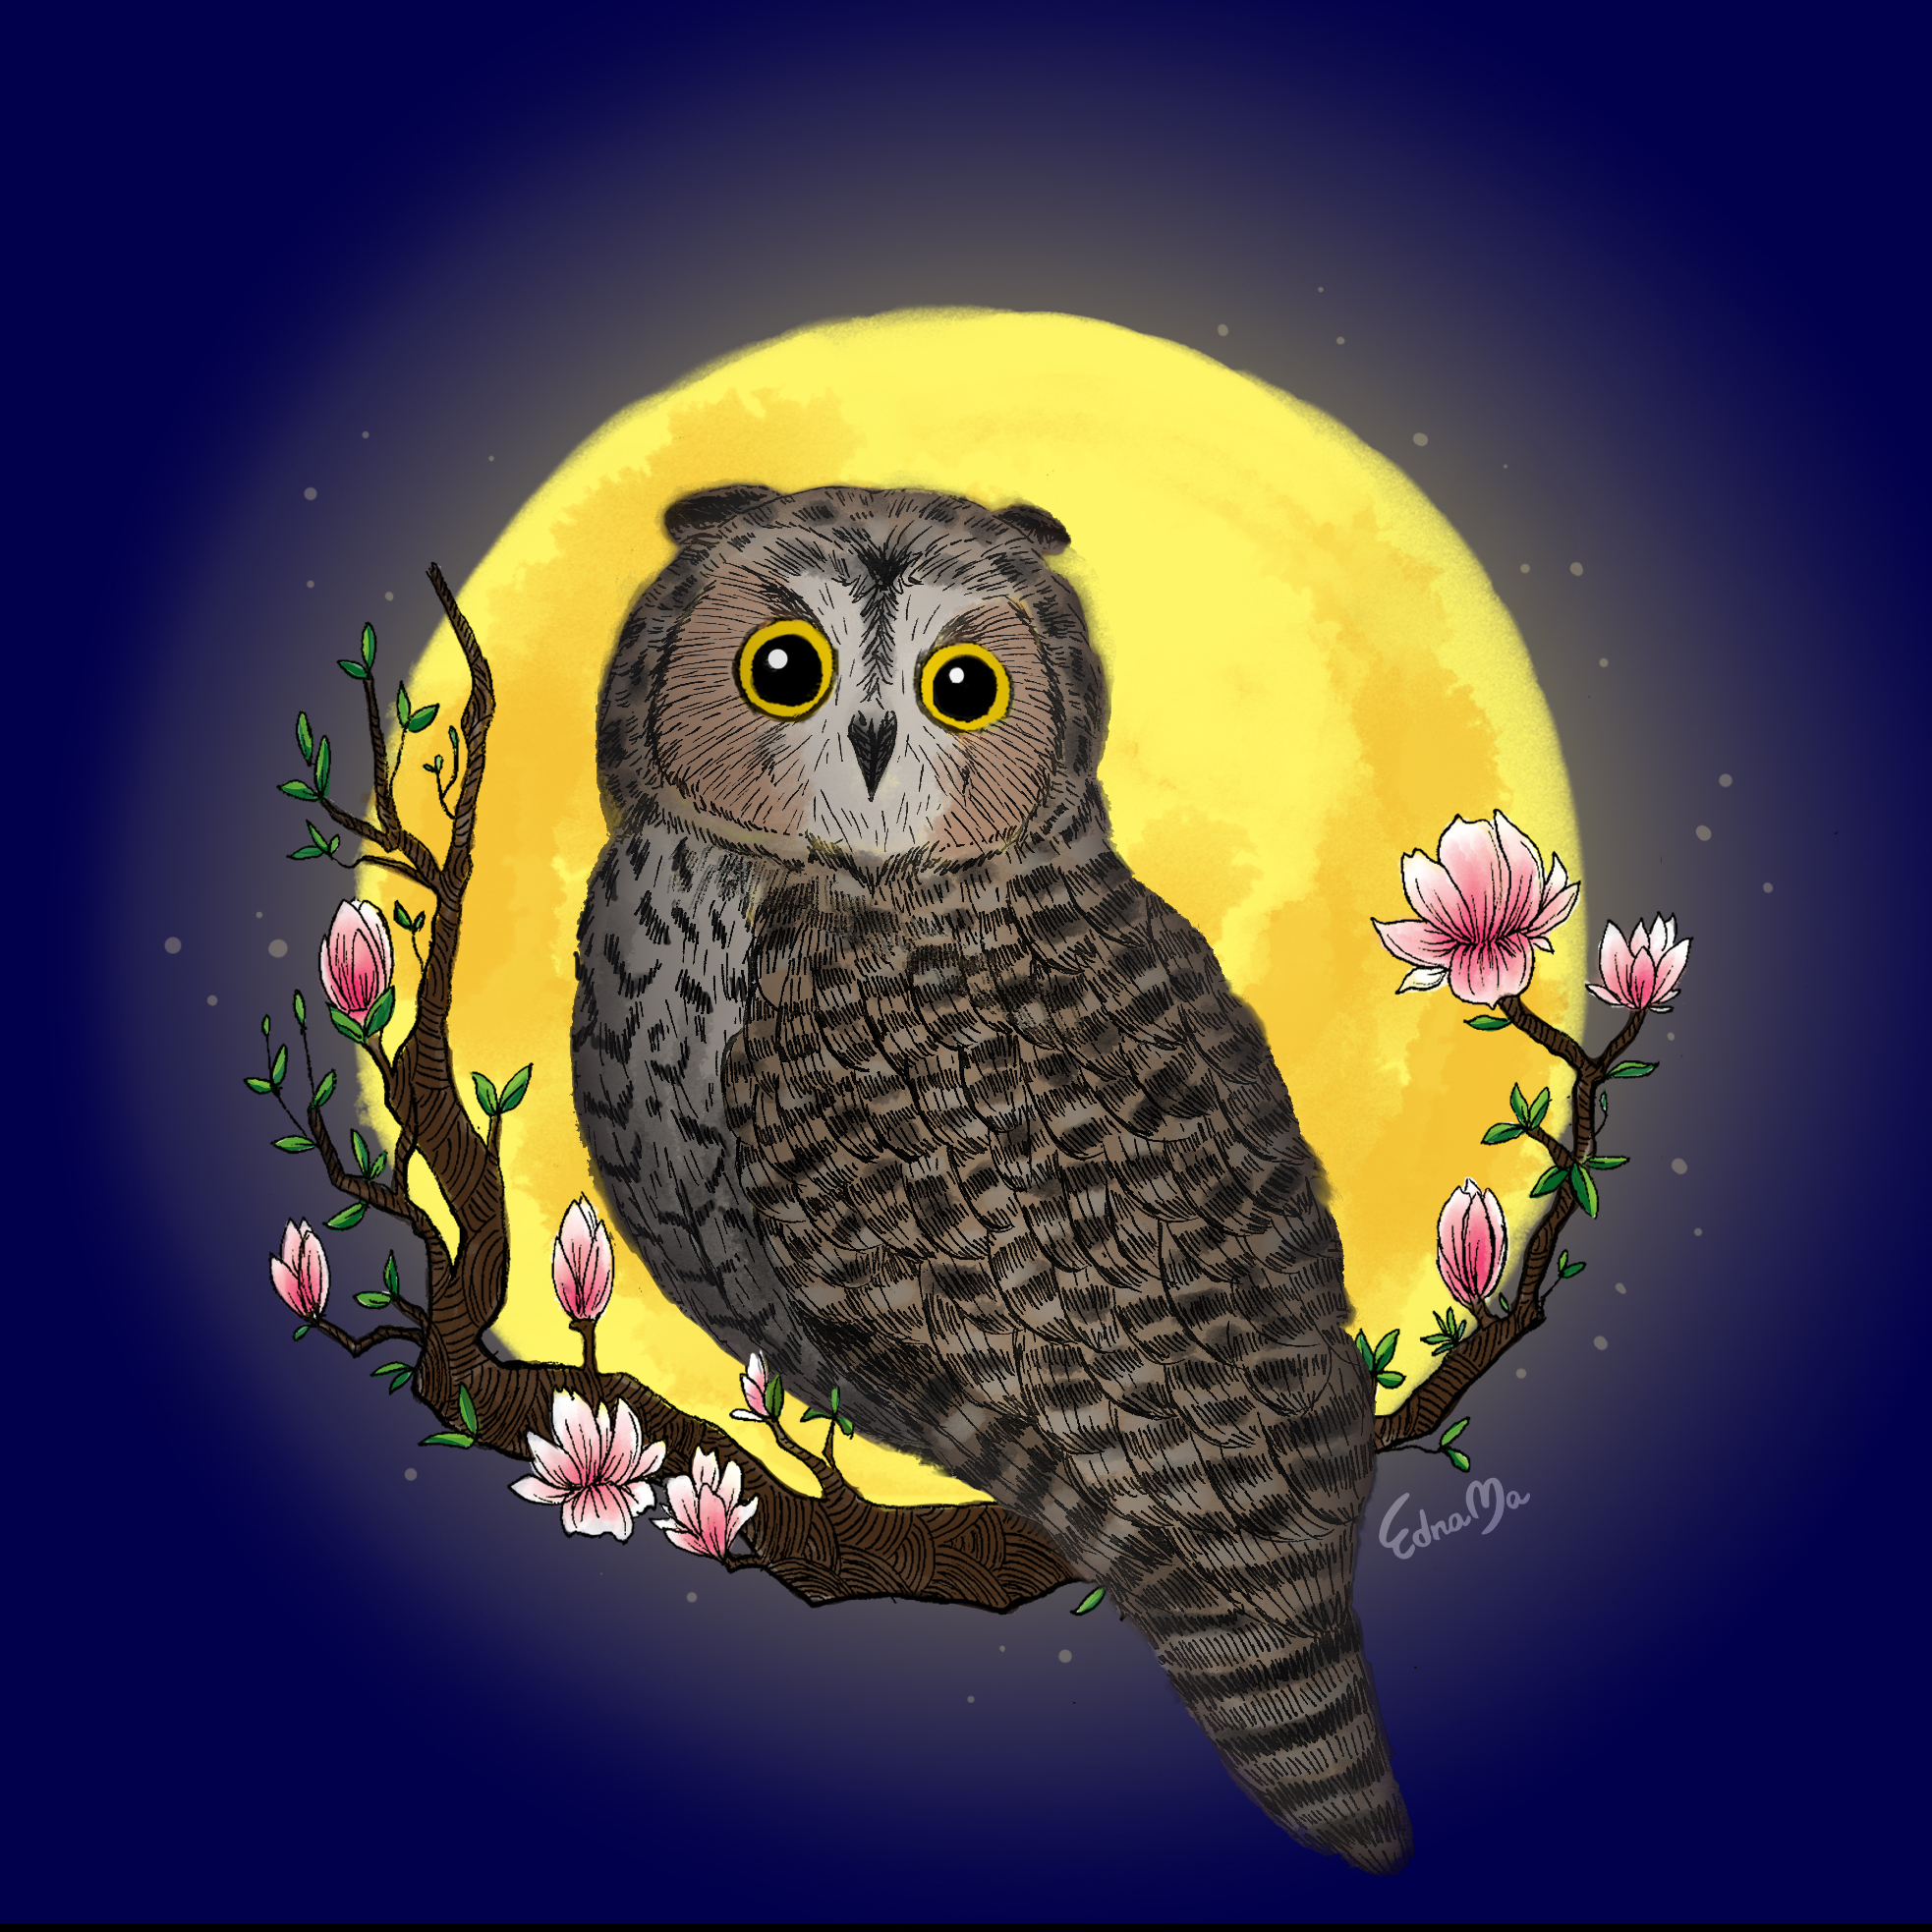 01Owl with Moon.jpg